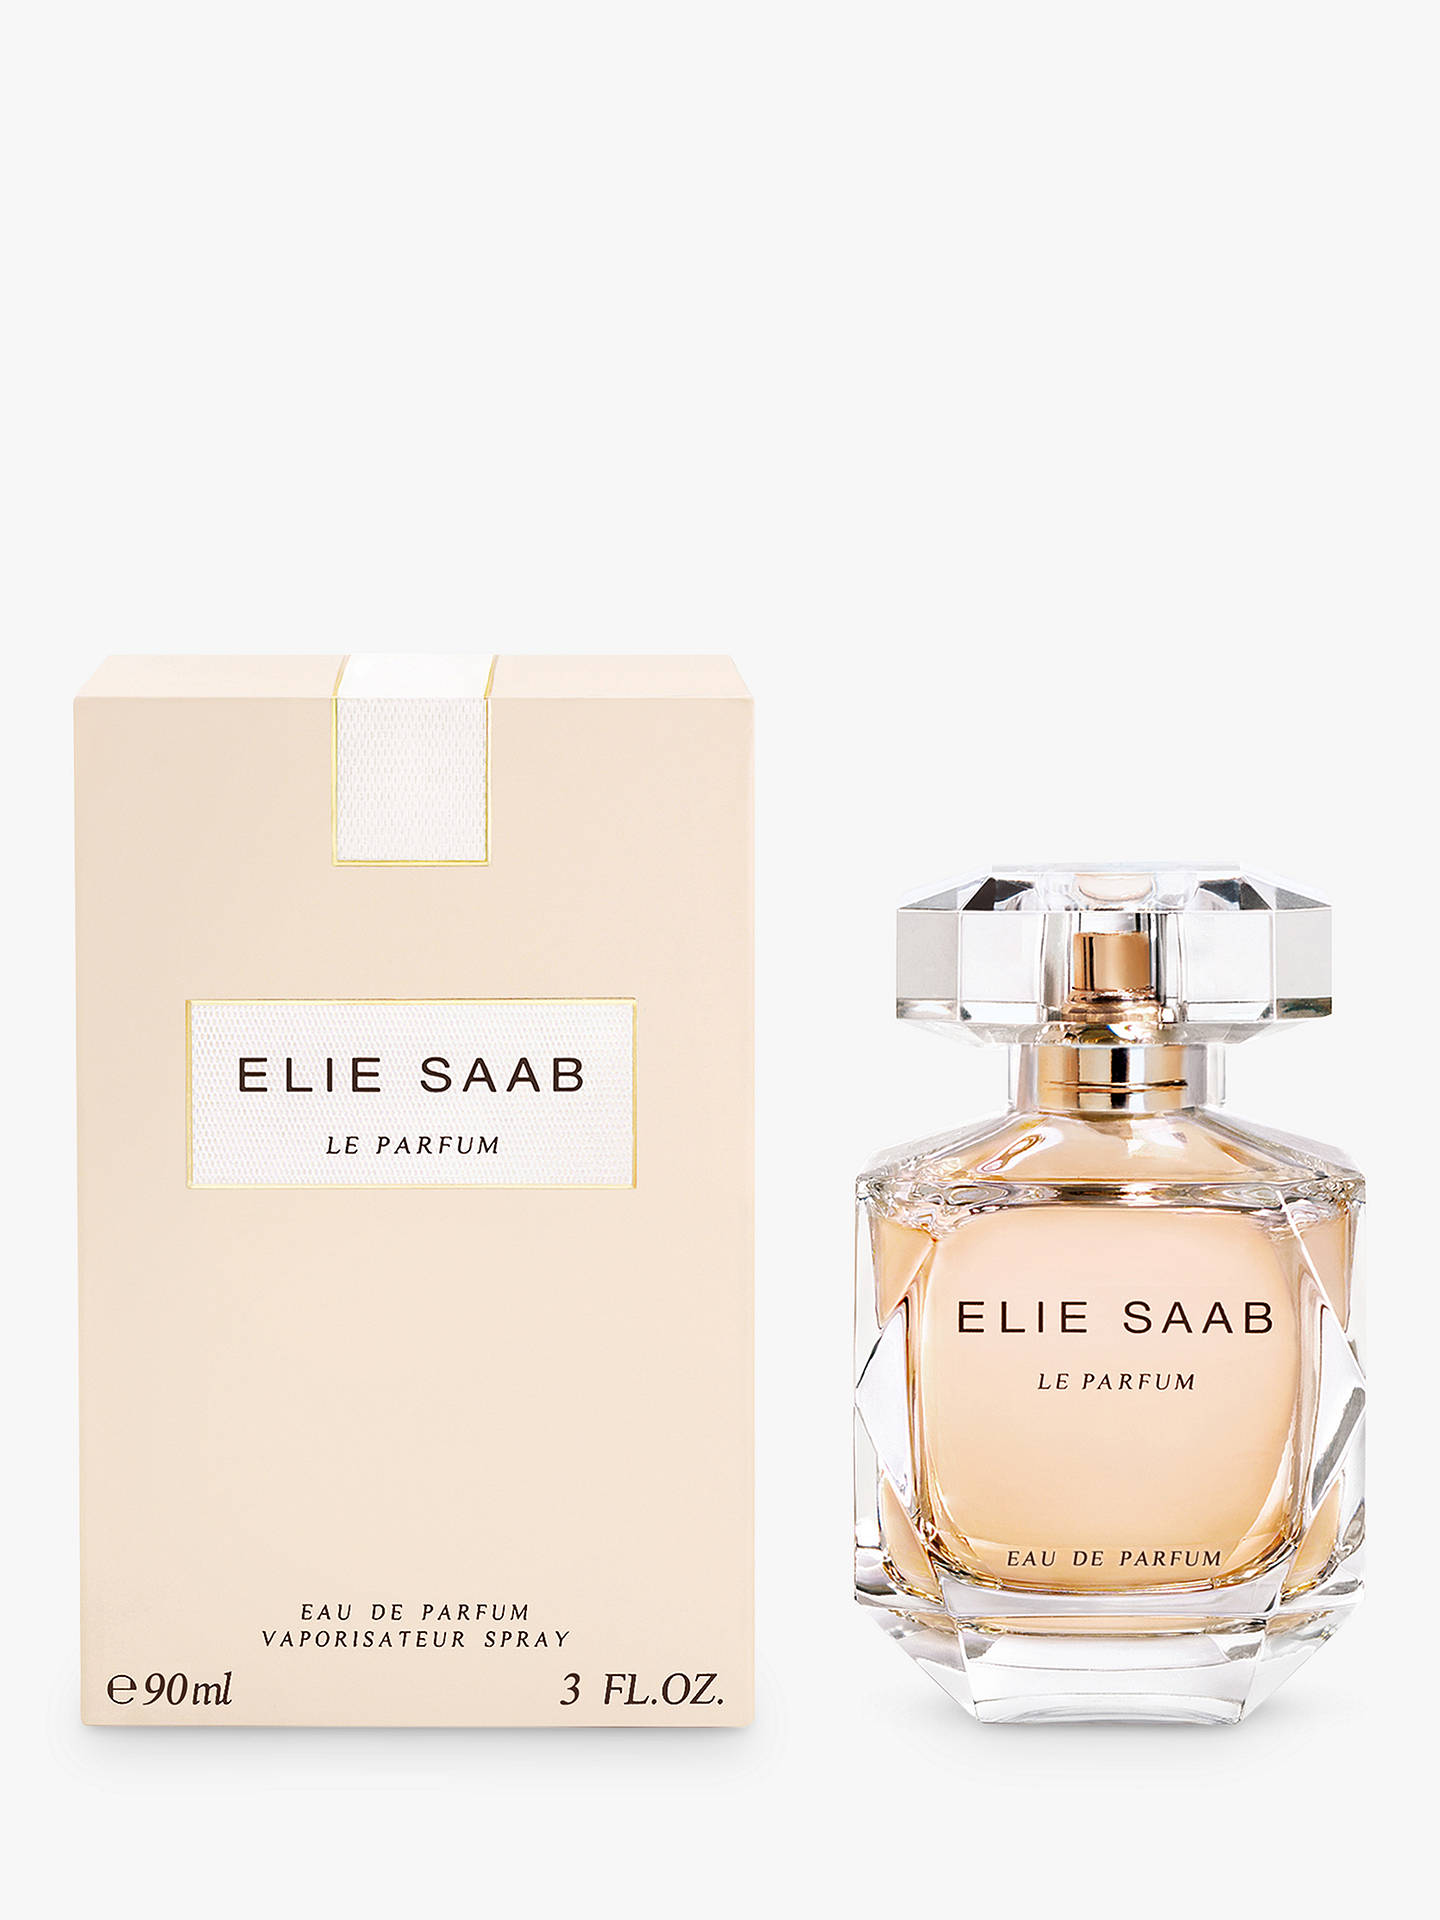 elie saab le parfum eau de parfum at john lewis partners. Black Bedroom Furniture Sets. Home Design Ideas